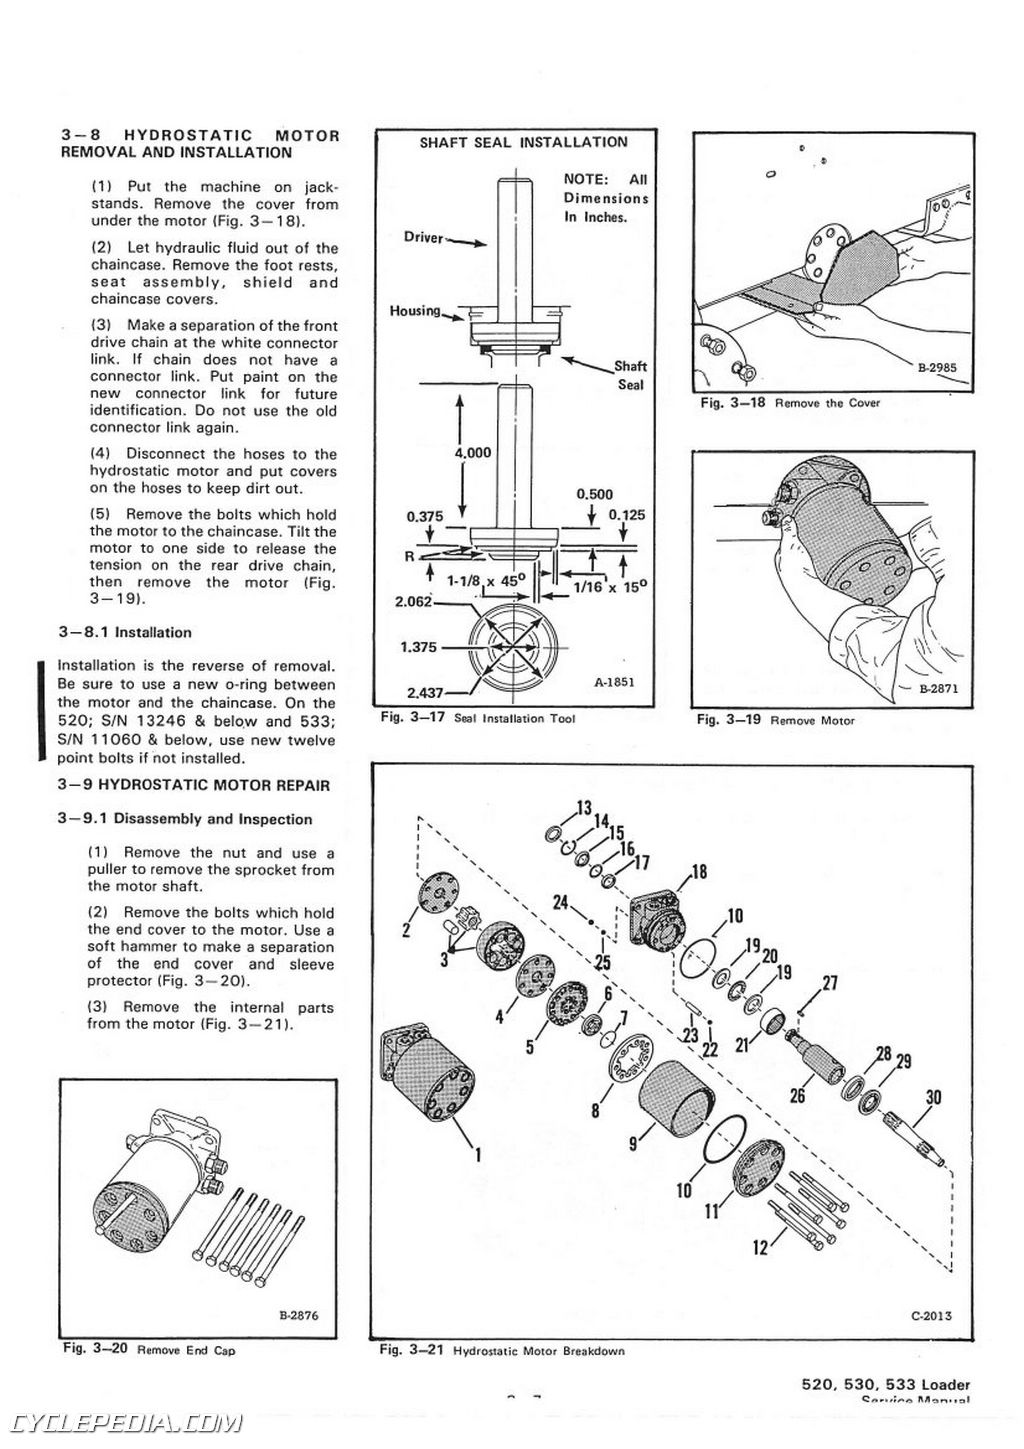 Manuals diagrams likewise Shovelhead Harley Wiring Harness Diagram Auto likewise 62 Engine furthermore 1984 1991ClubCarGas further Official 2010 Polaris Sportsman Xp 550 Factory Service Manual 9922468. on golf cart engine oil